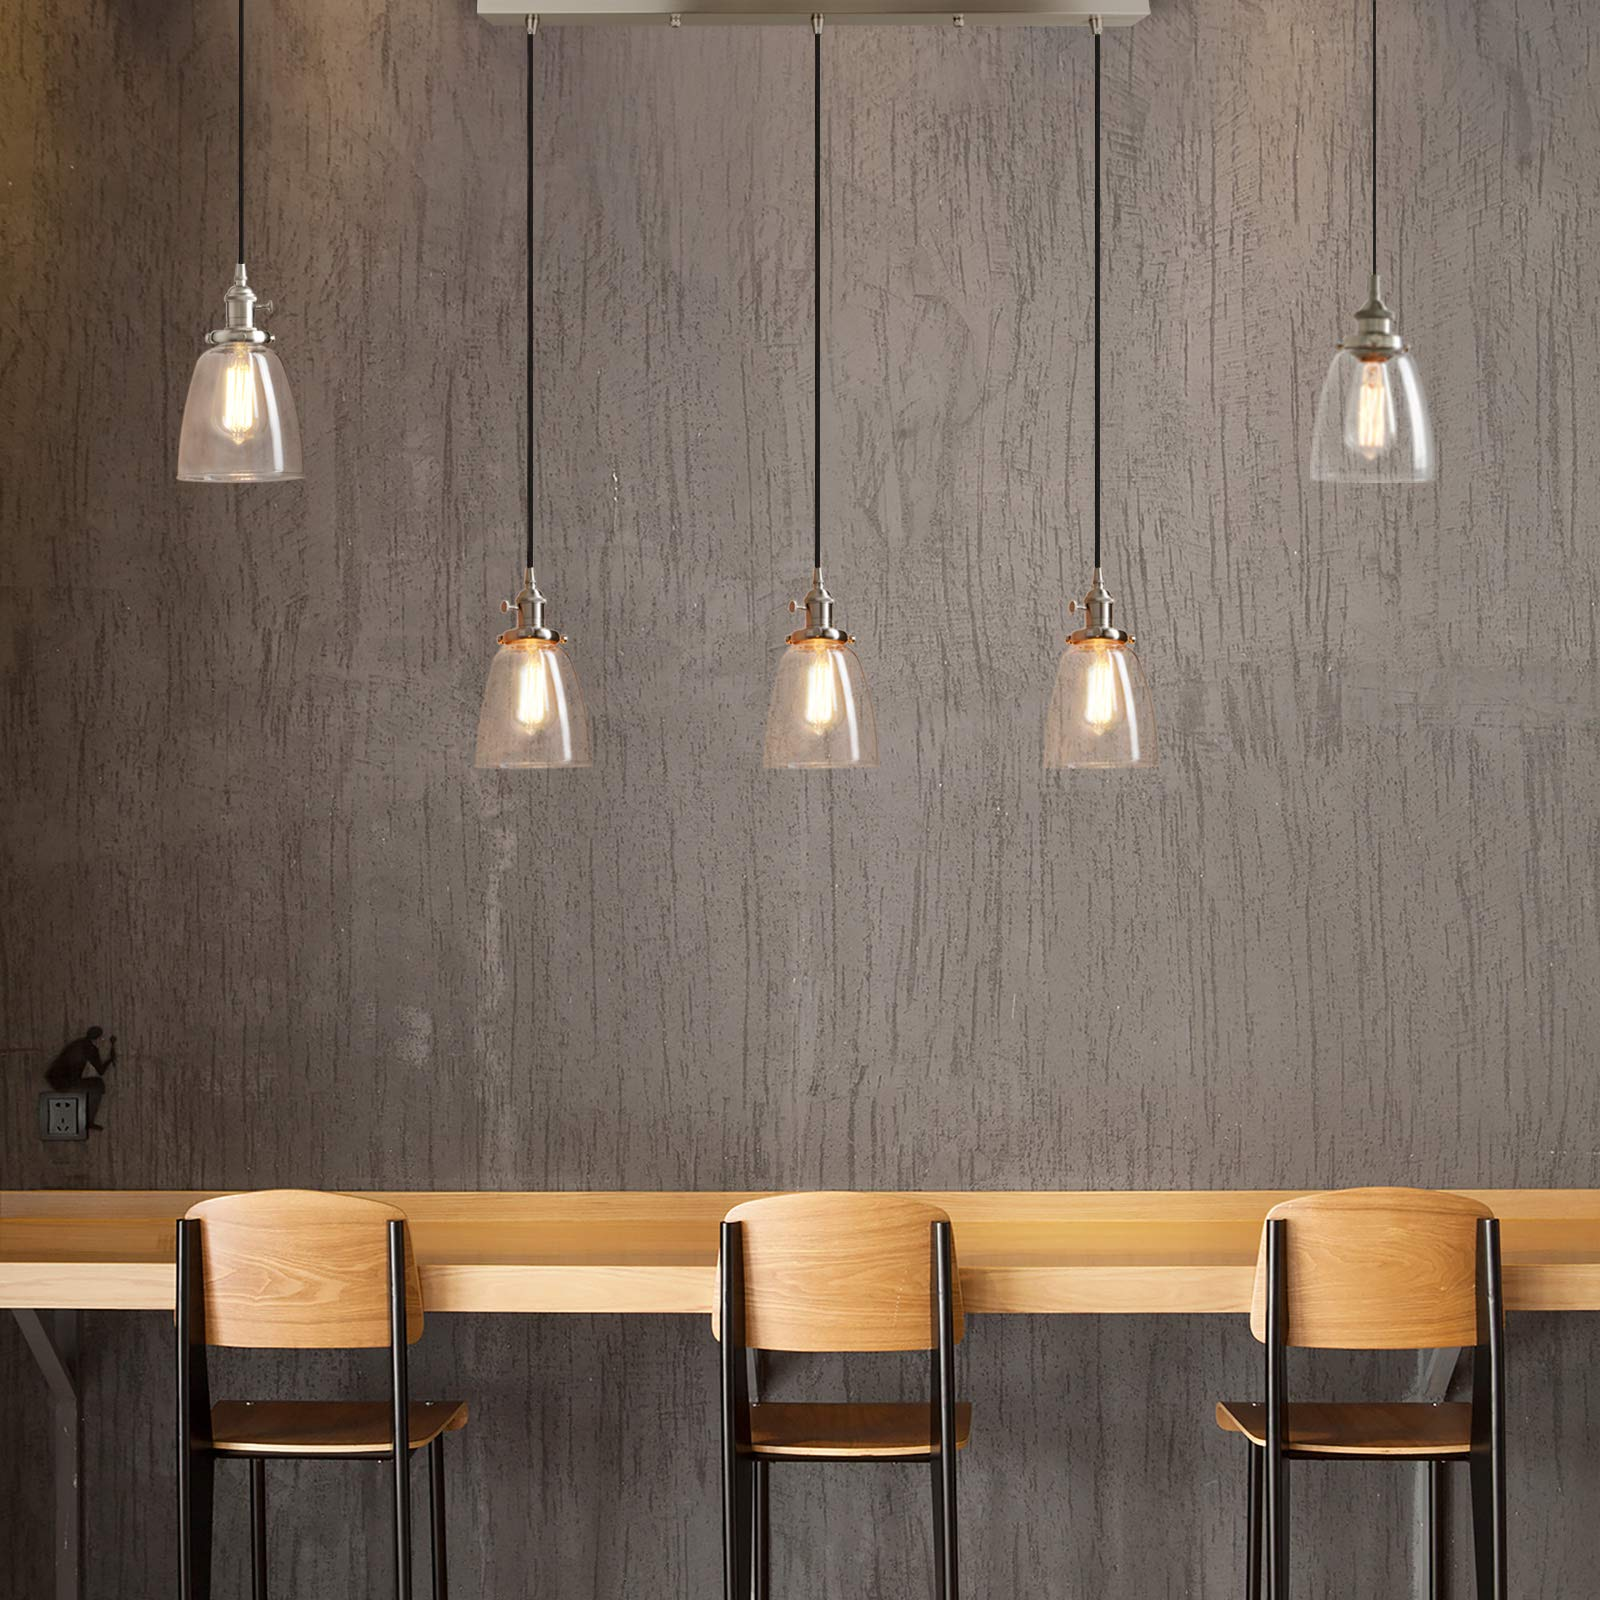 Pathson Industrial 3-Light Pendant Lighting Kitchen Island Hanging Lamps with Oval Clear Glass Shade Chandelier Ceiling Light Fixture (Brushed Steel) by Pathson (Image #3)